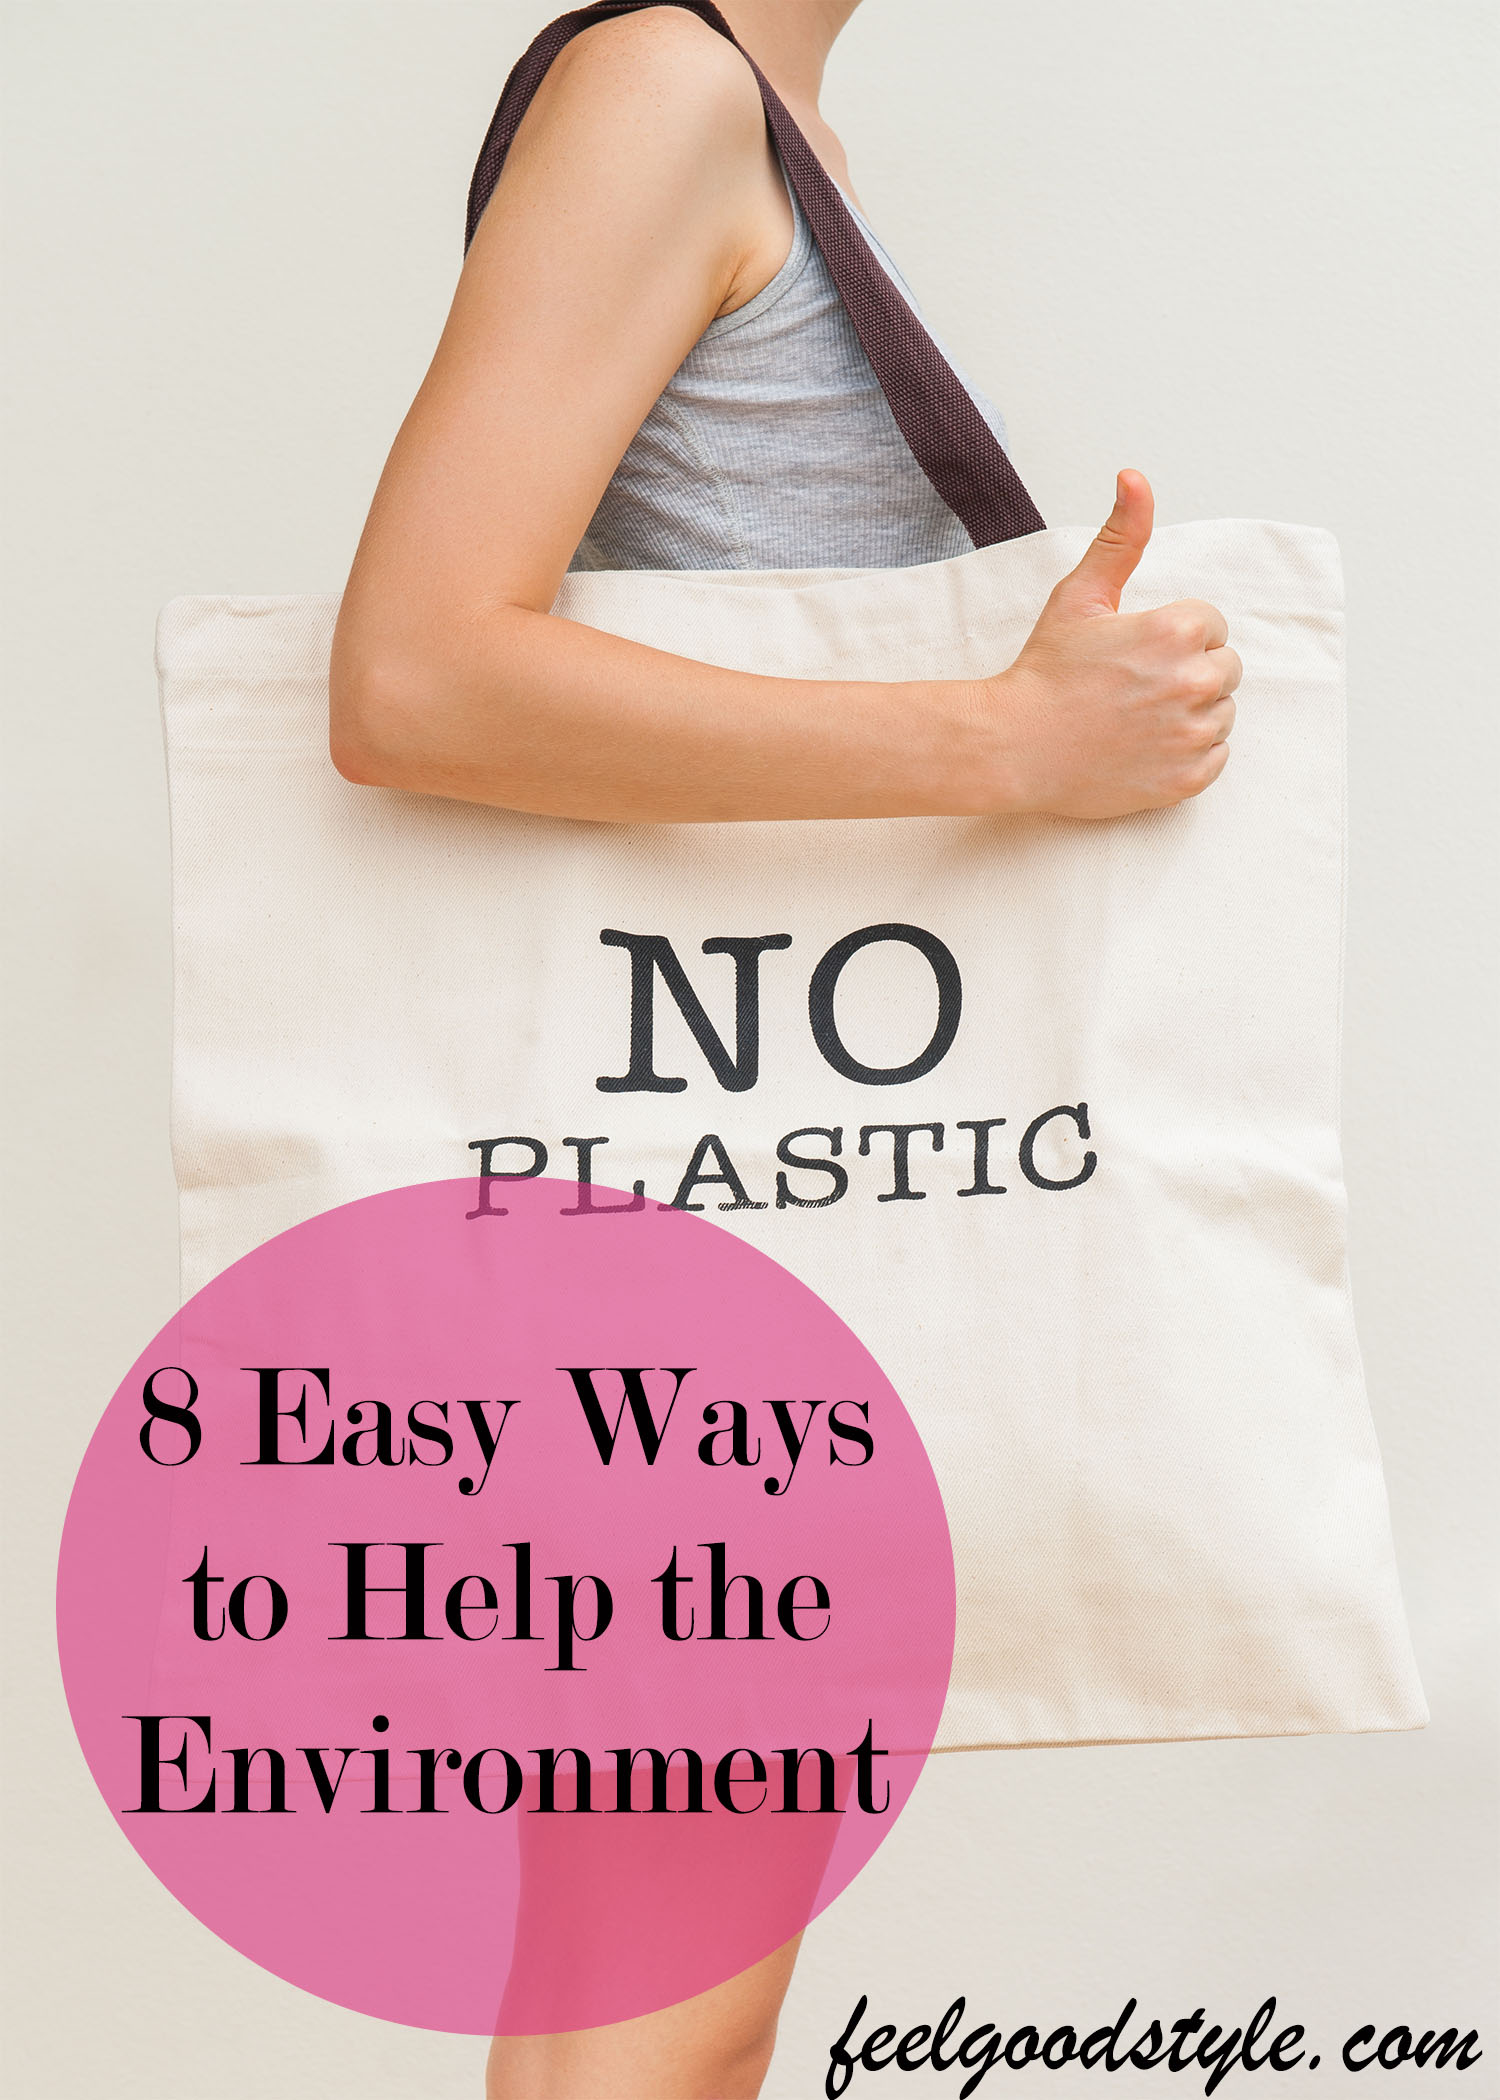 8 Simple Life Hacks For Helping The Environment